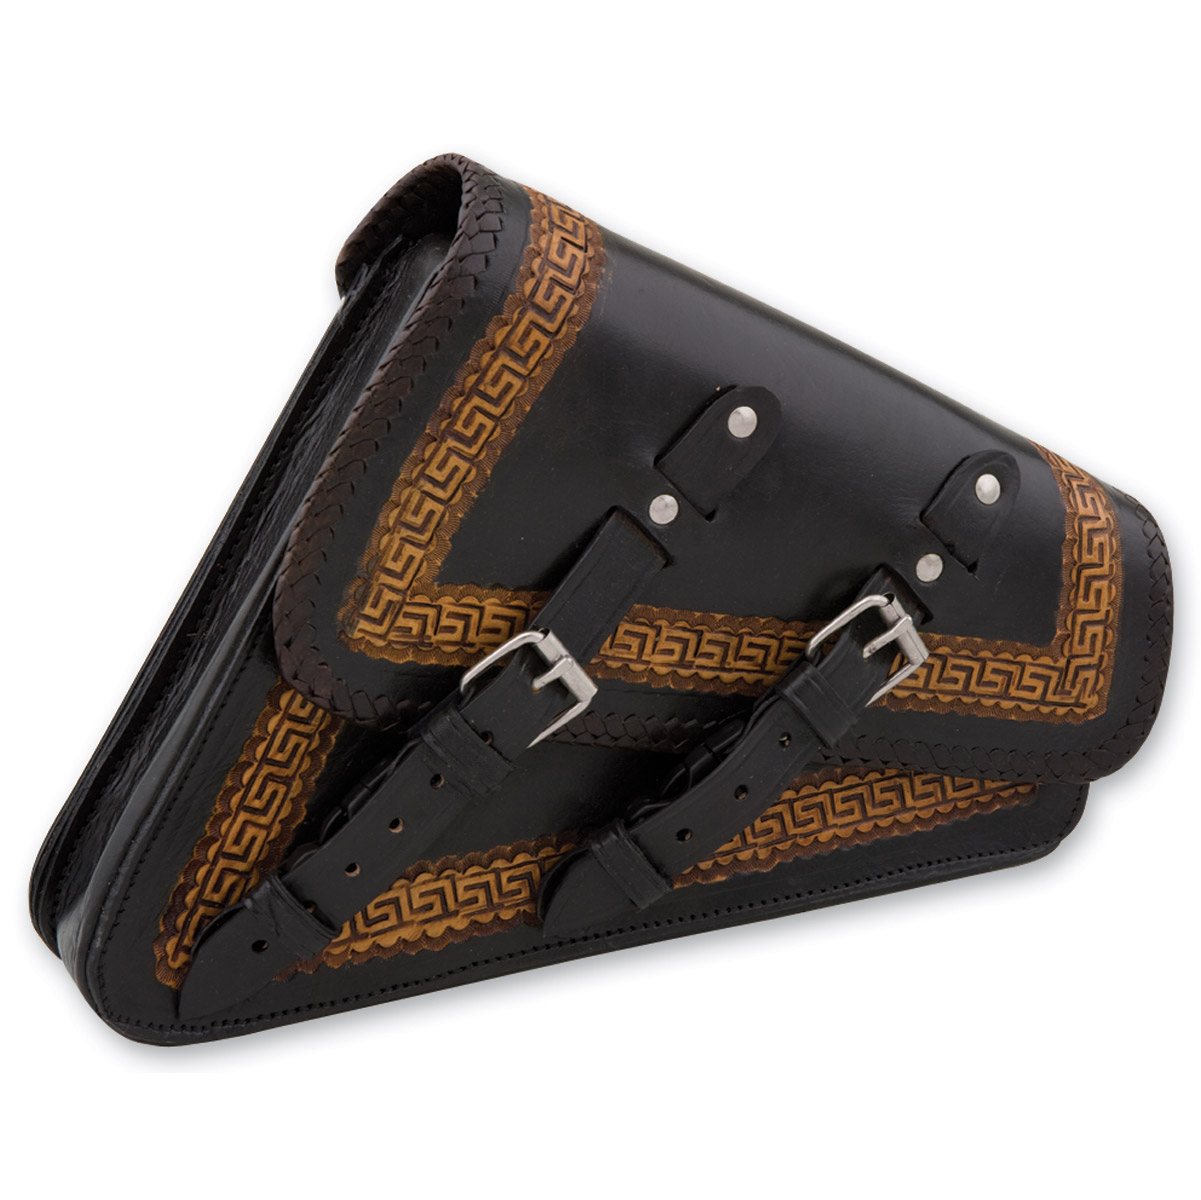 Convict Custom Cycles La Raza Black/Brown Swingarm Bags